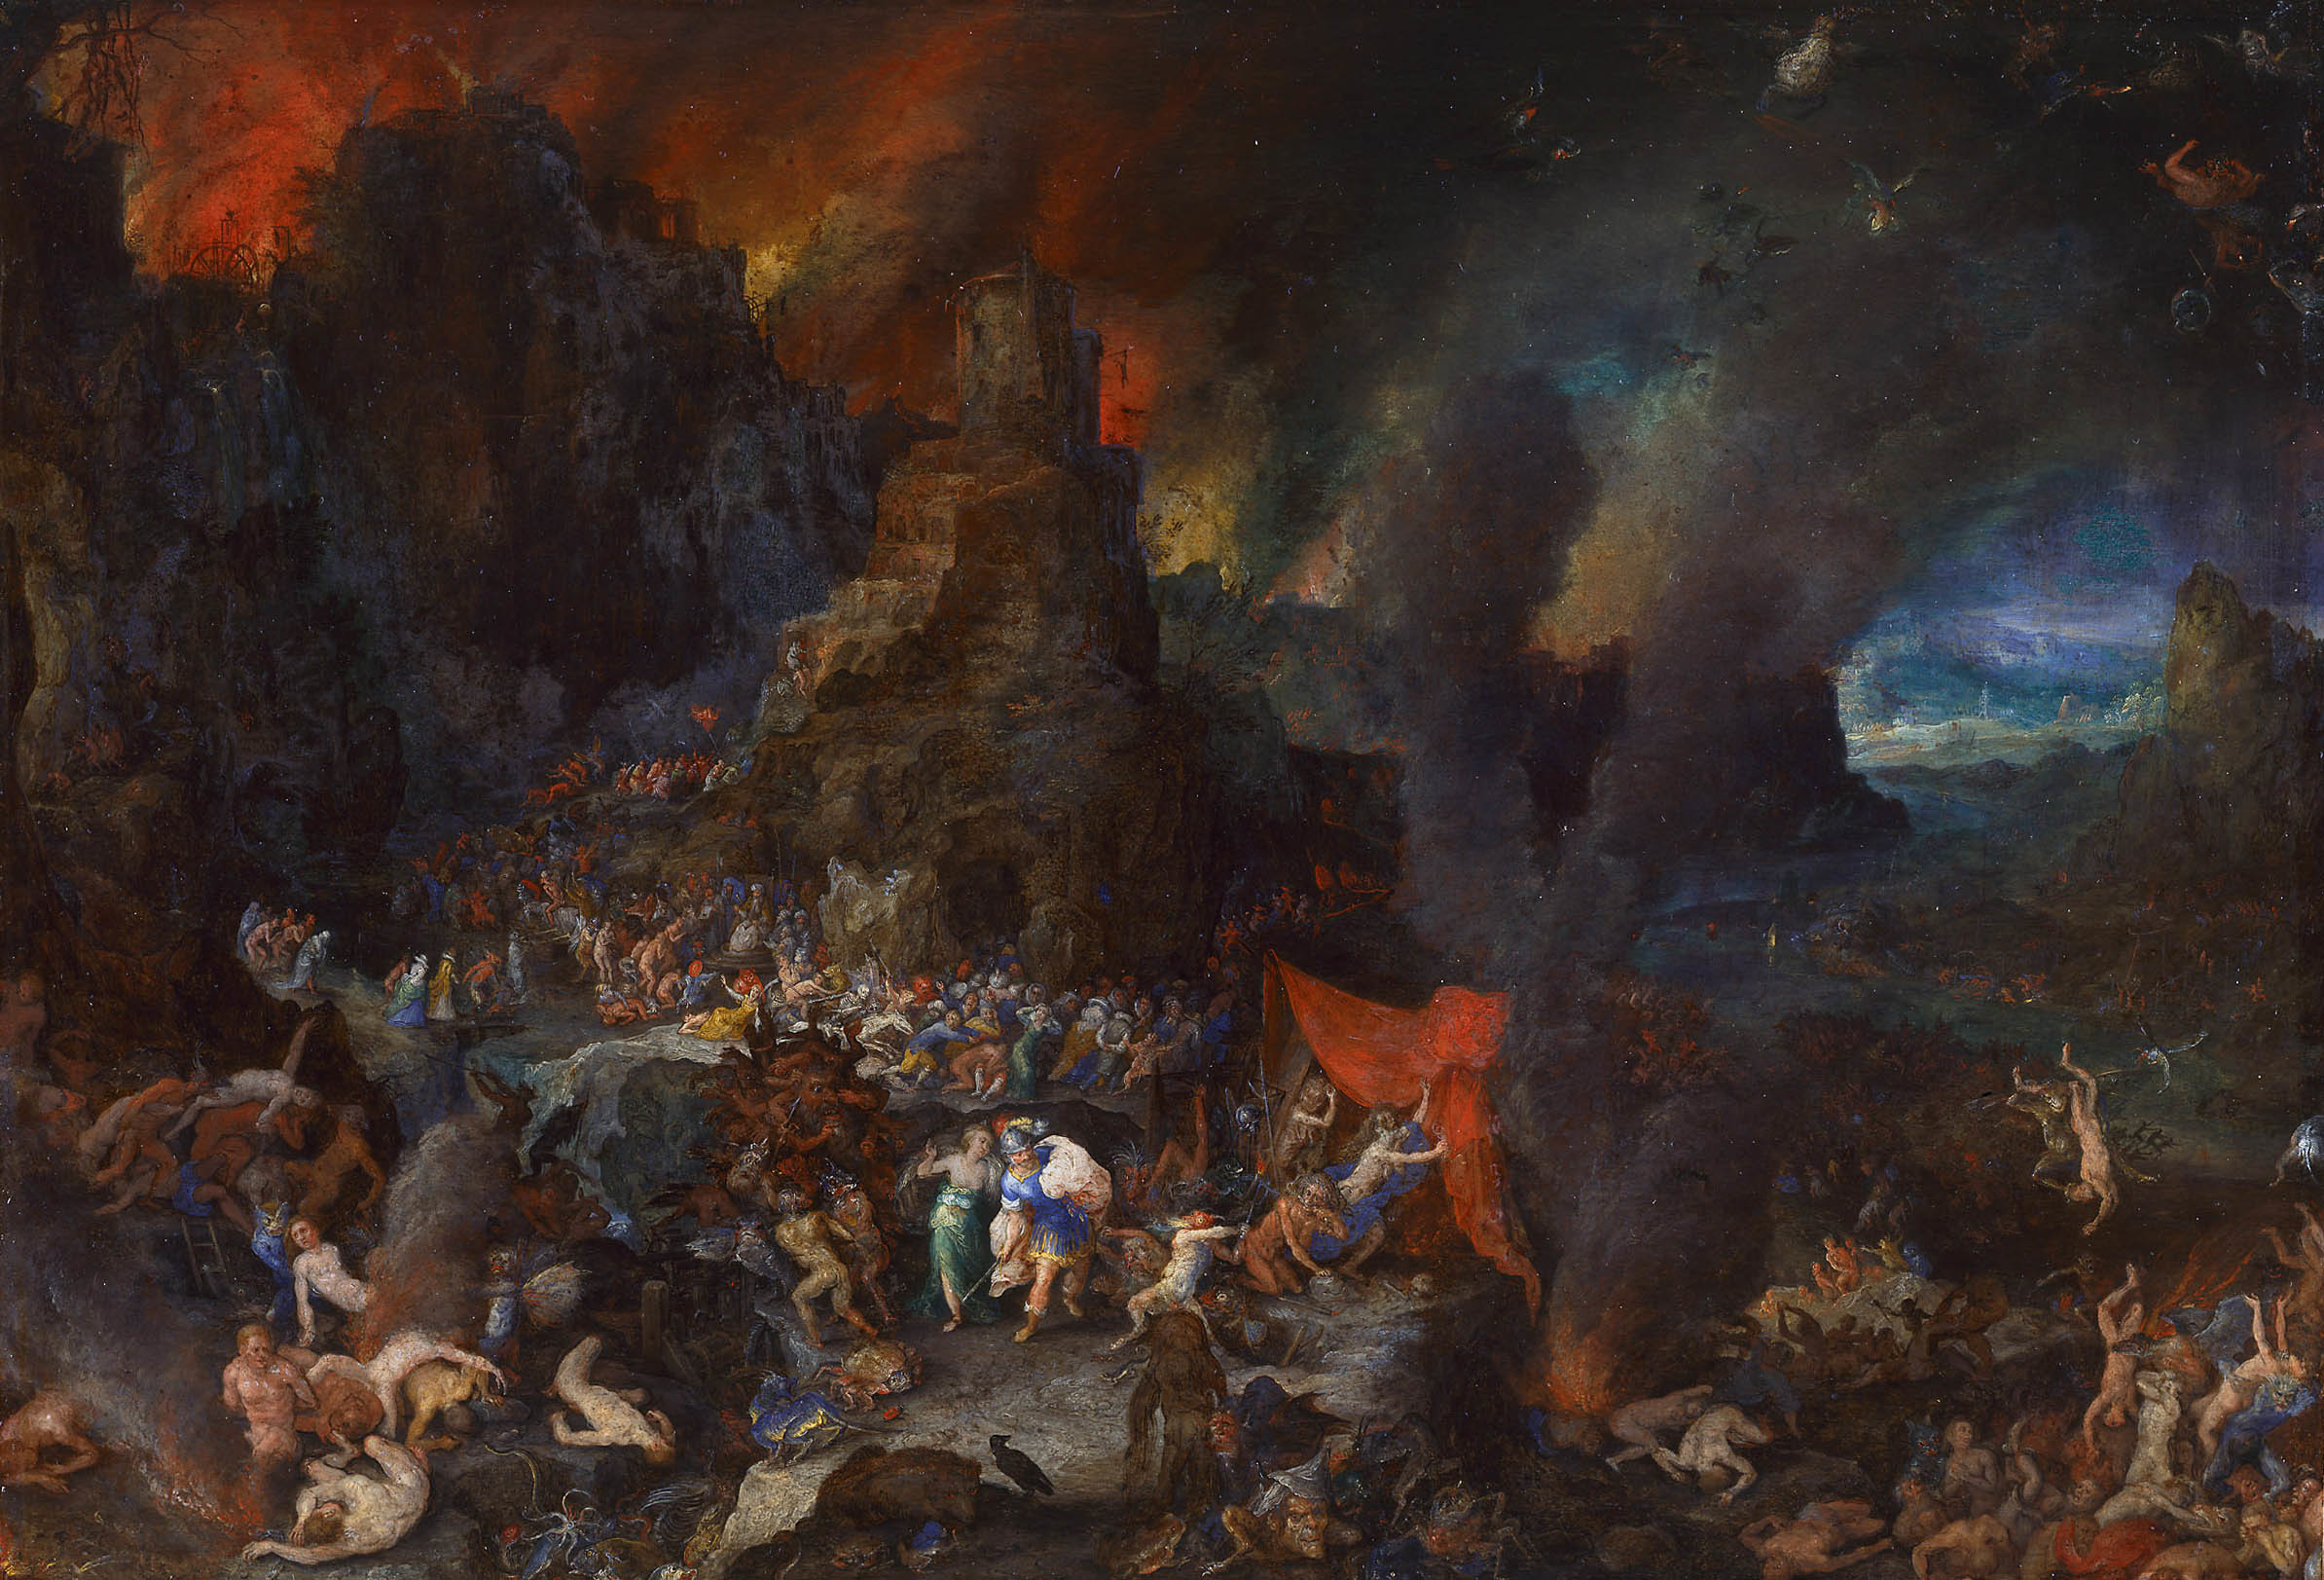 File:Jan Brueghel the Elder - Aeneas and the Sibyl in the Underworld.jpg